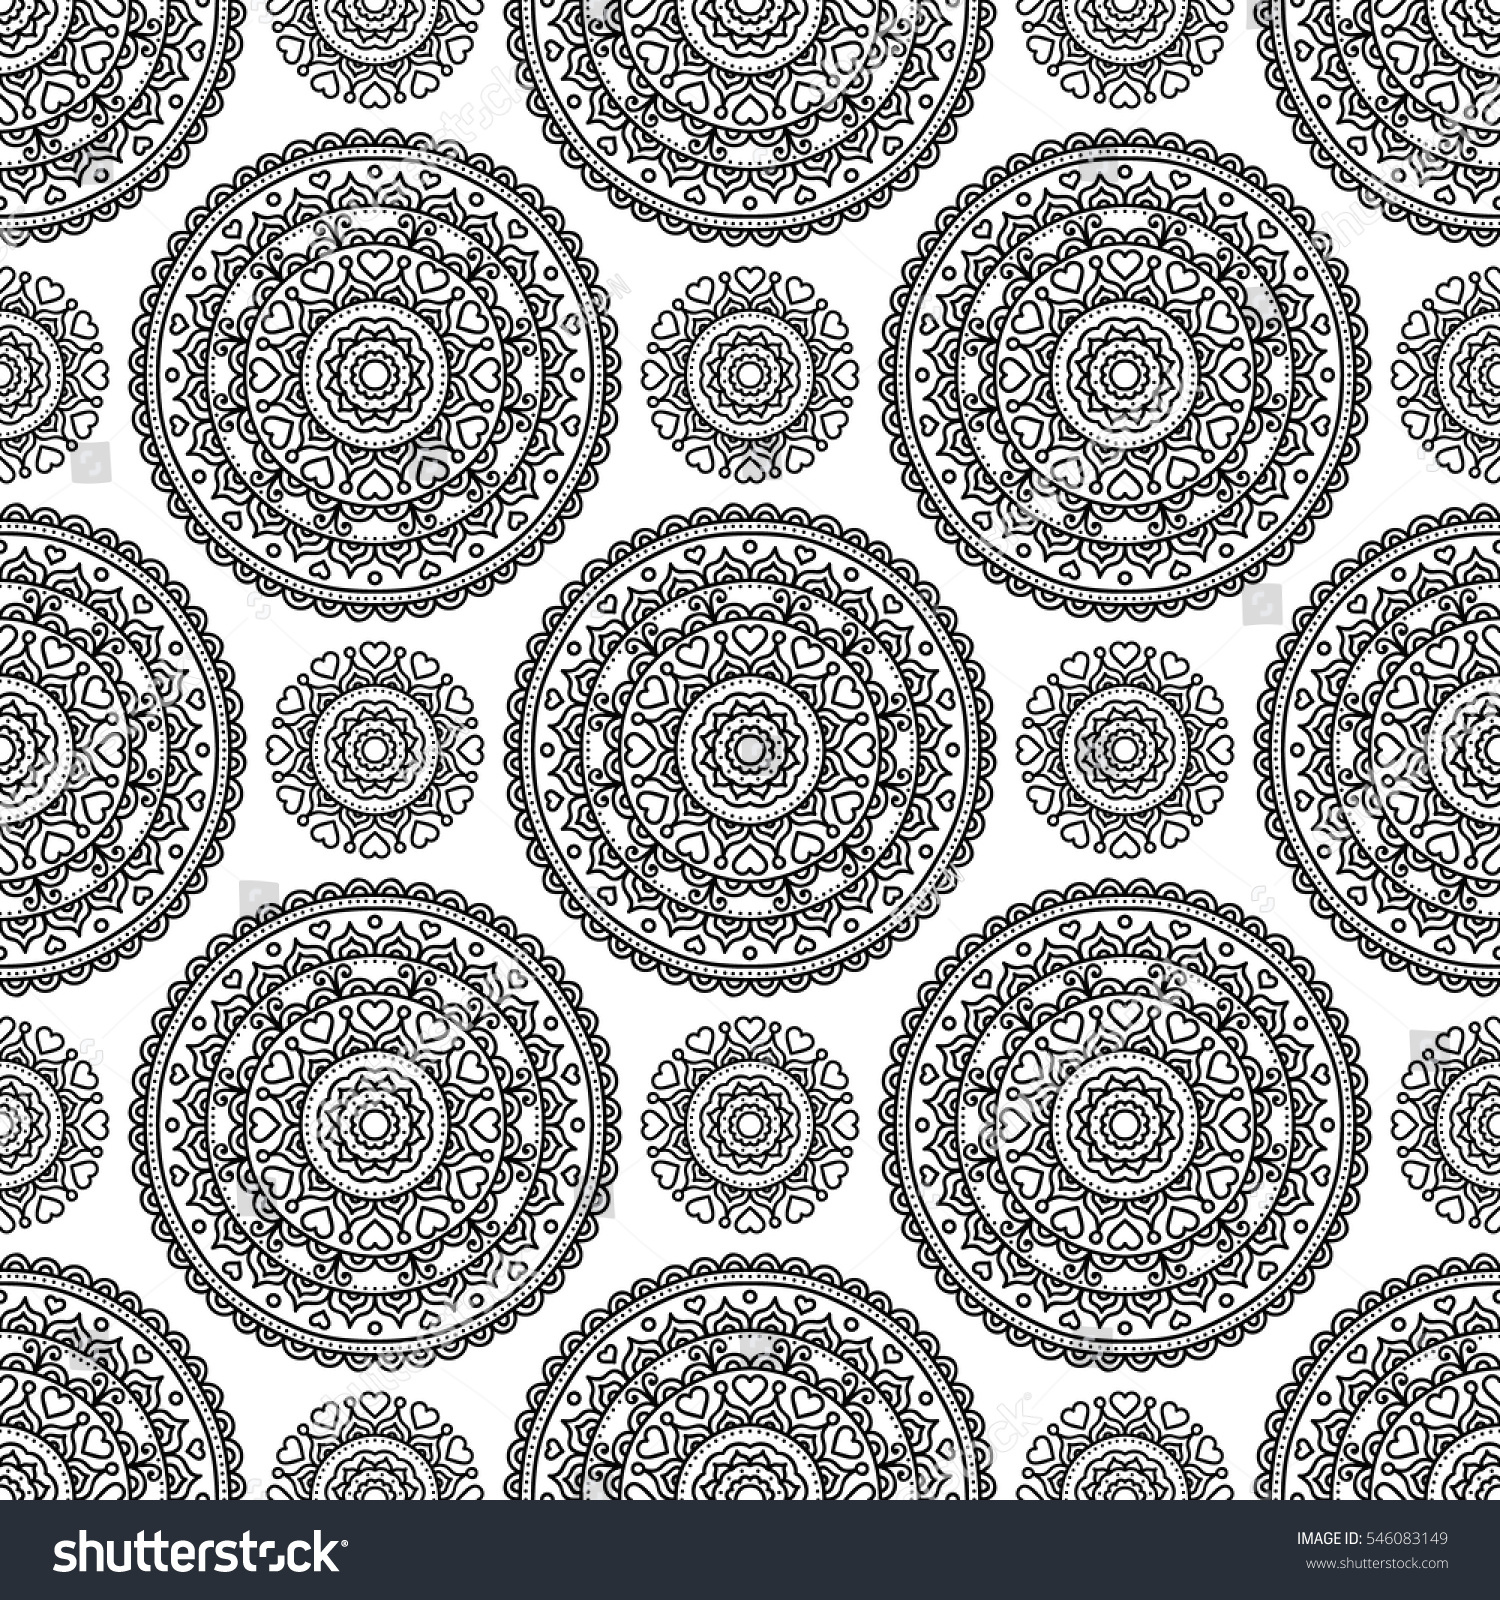 Vector seamless pattern with ethnic tribal mandala Hand drawn doodle mandala with hearts and dots Coloring page Black and white